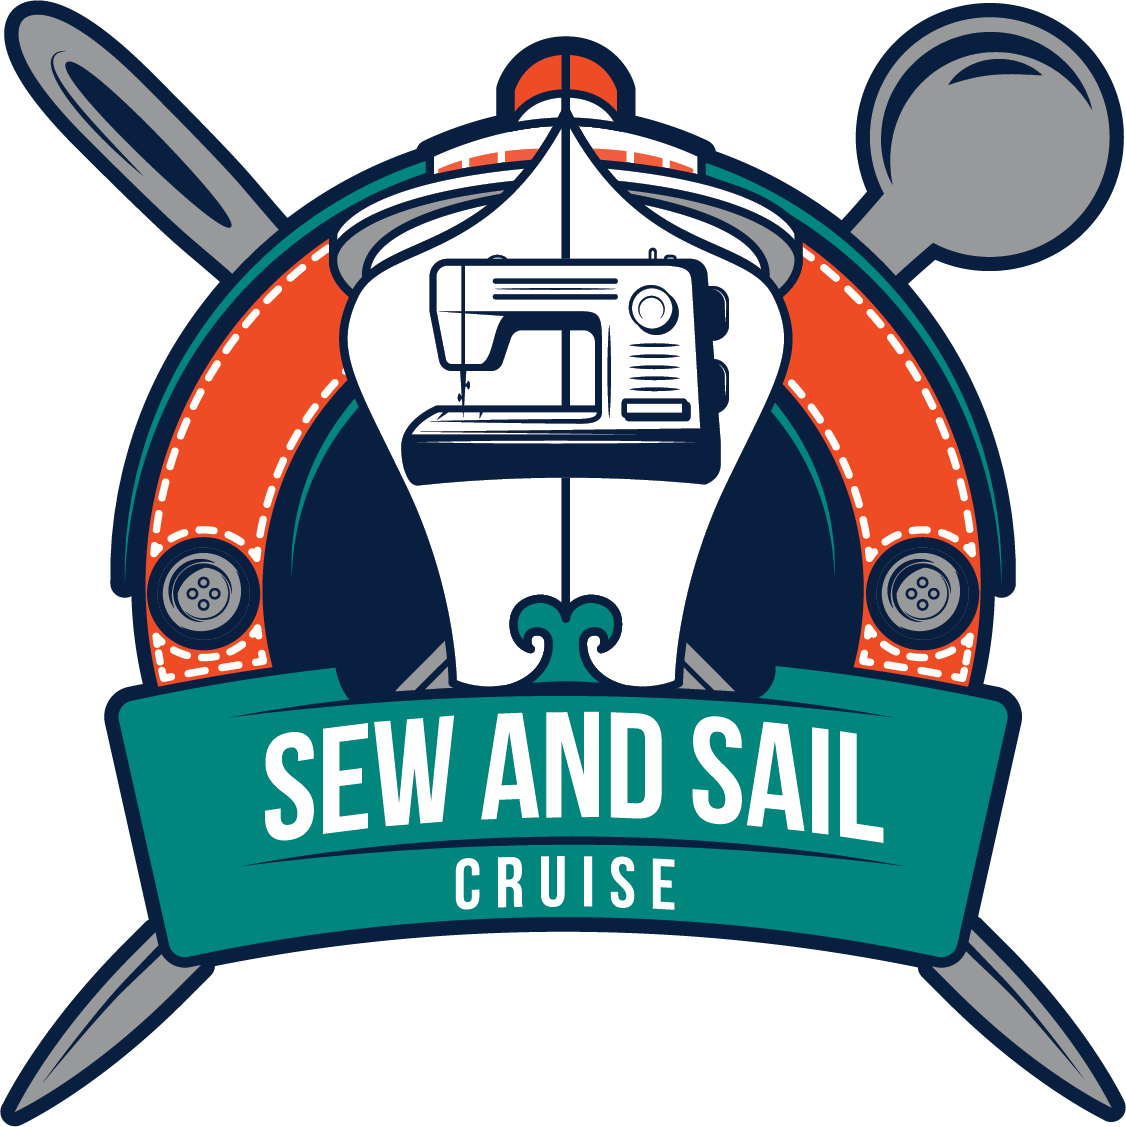 SEW AND SAIL CRUISE